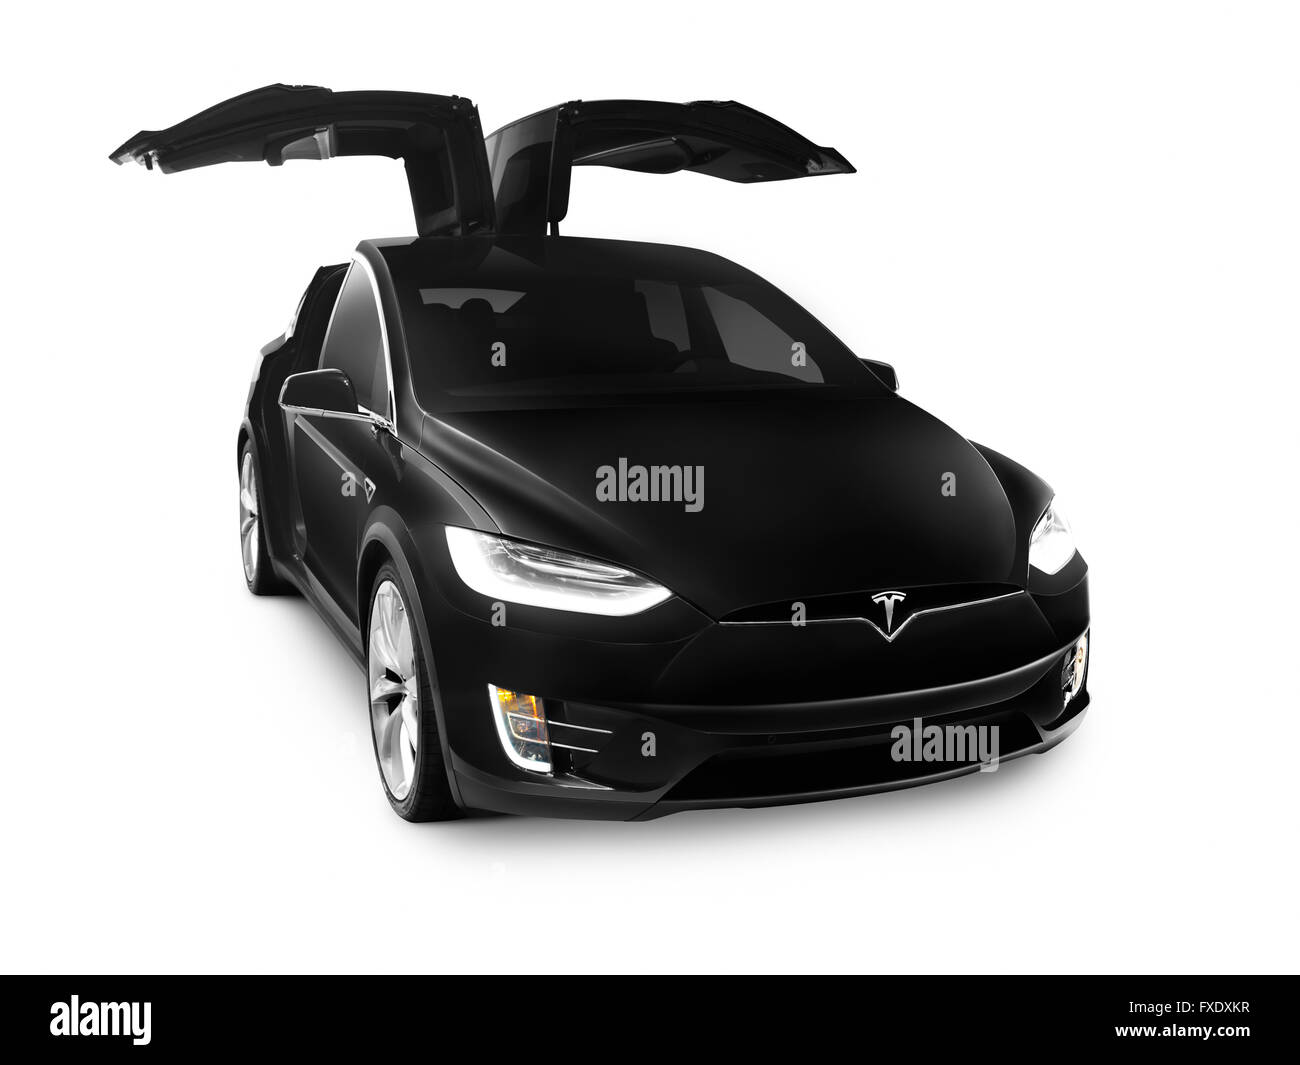 Black 2017 Tesla Model X luxury SUV electric car with open falcon wing doors isolated on white background  sc 1 st  Alamy & Black 2017 Tesla Model X luxury SUV electric car with open falcon ...